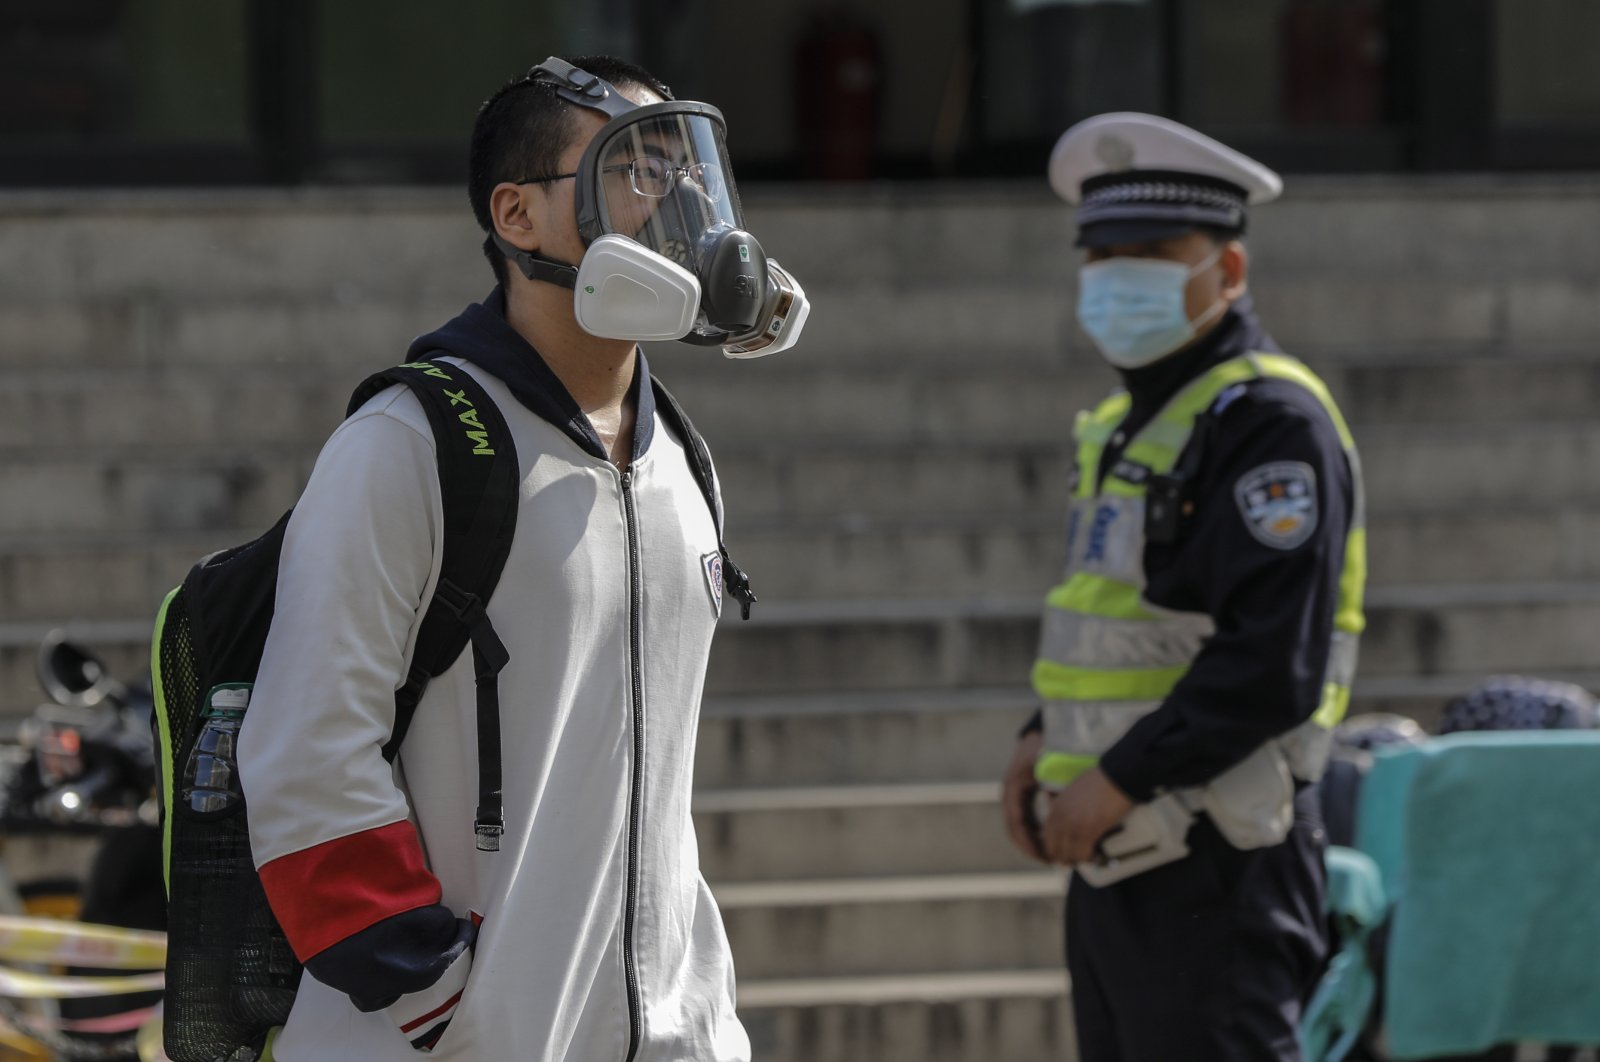 A student wearing a face mask leaves a high school in Beijing, China, 27 April 2020. Senior students in Beijing return to class for the first time after schools were closed down in January due to the outbreak of the coronavirus and COVID-19 disease. (EPA Photo)